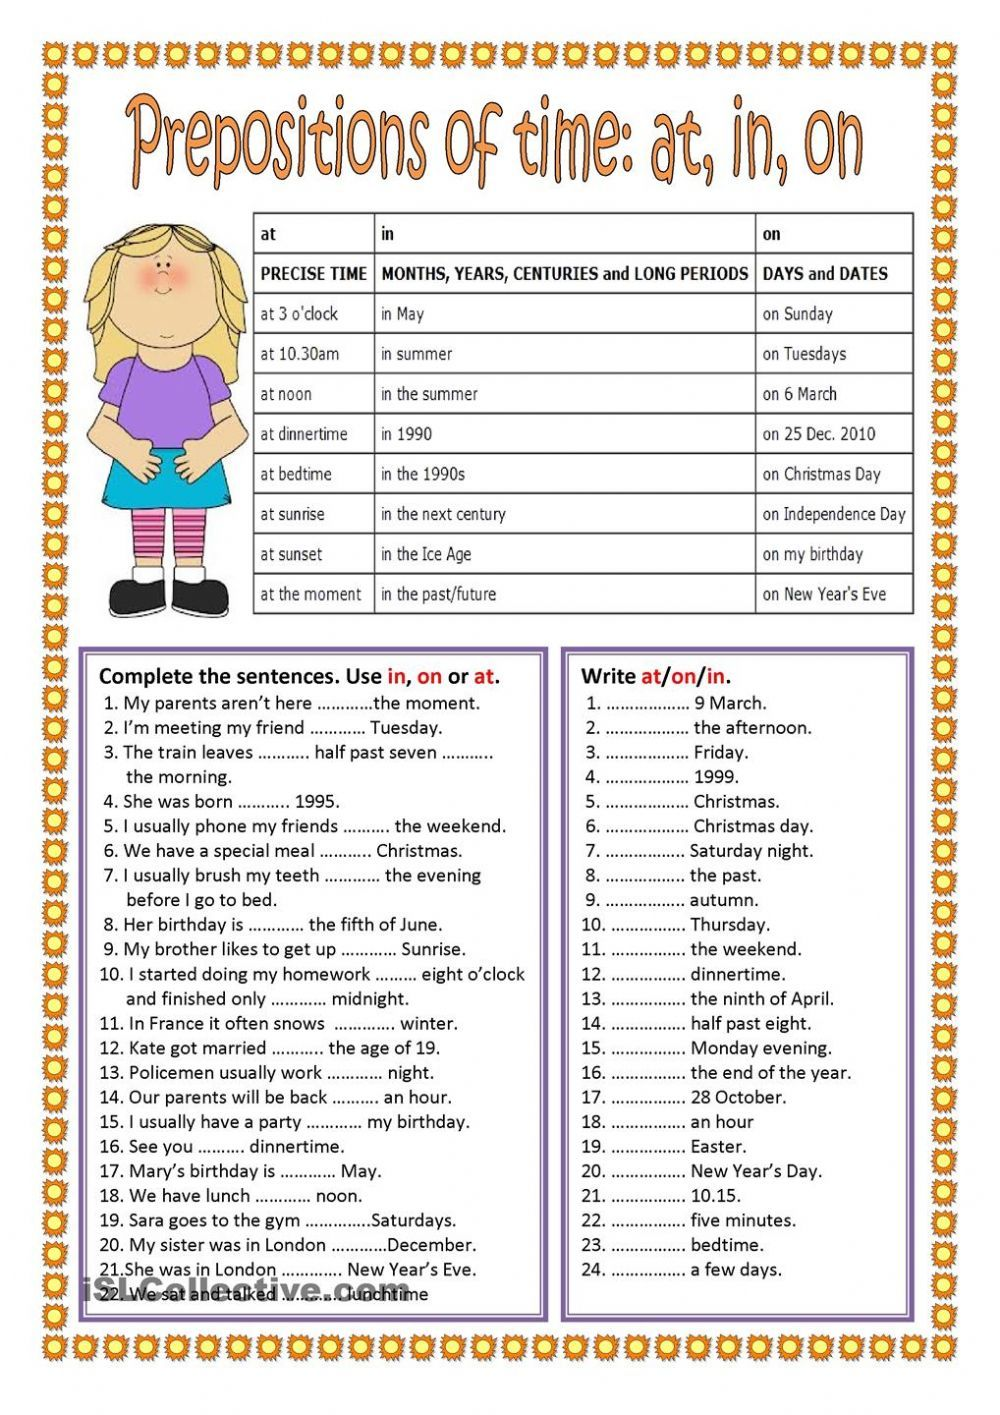 small resolution of https://dubaikhalifas.com/prepositions-of-time-at-in-on-interactive-worksheet-in-2020-prepositions-english-grammar/